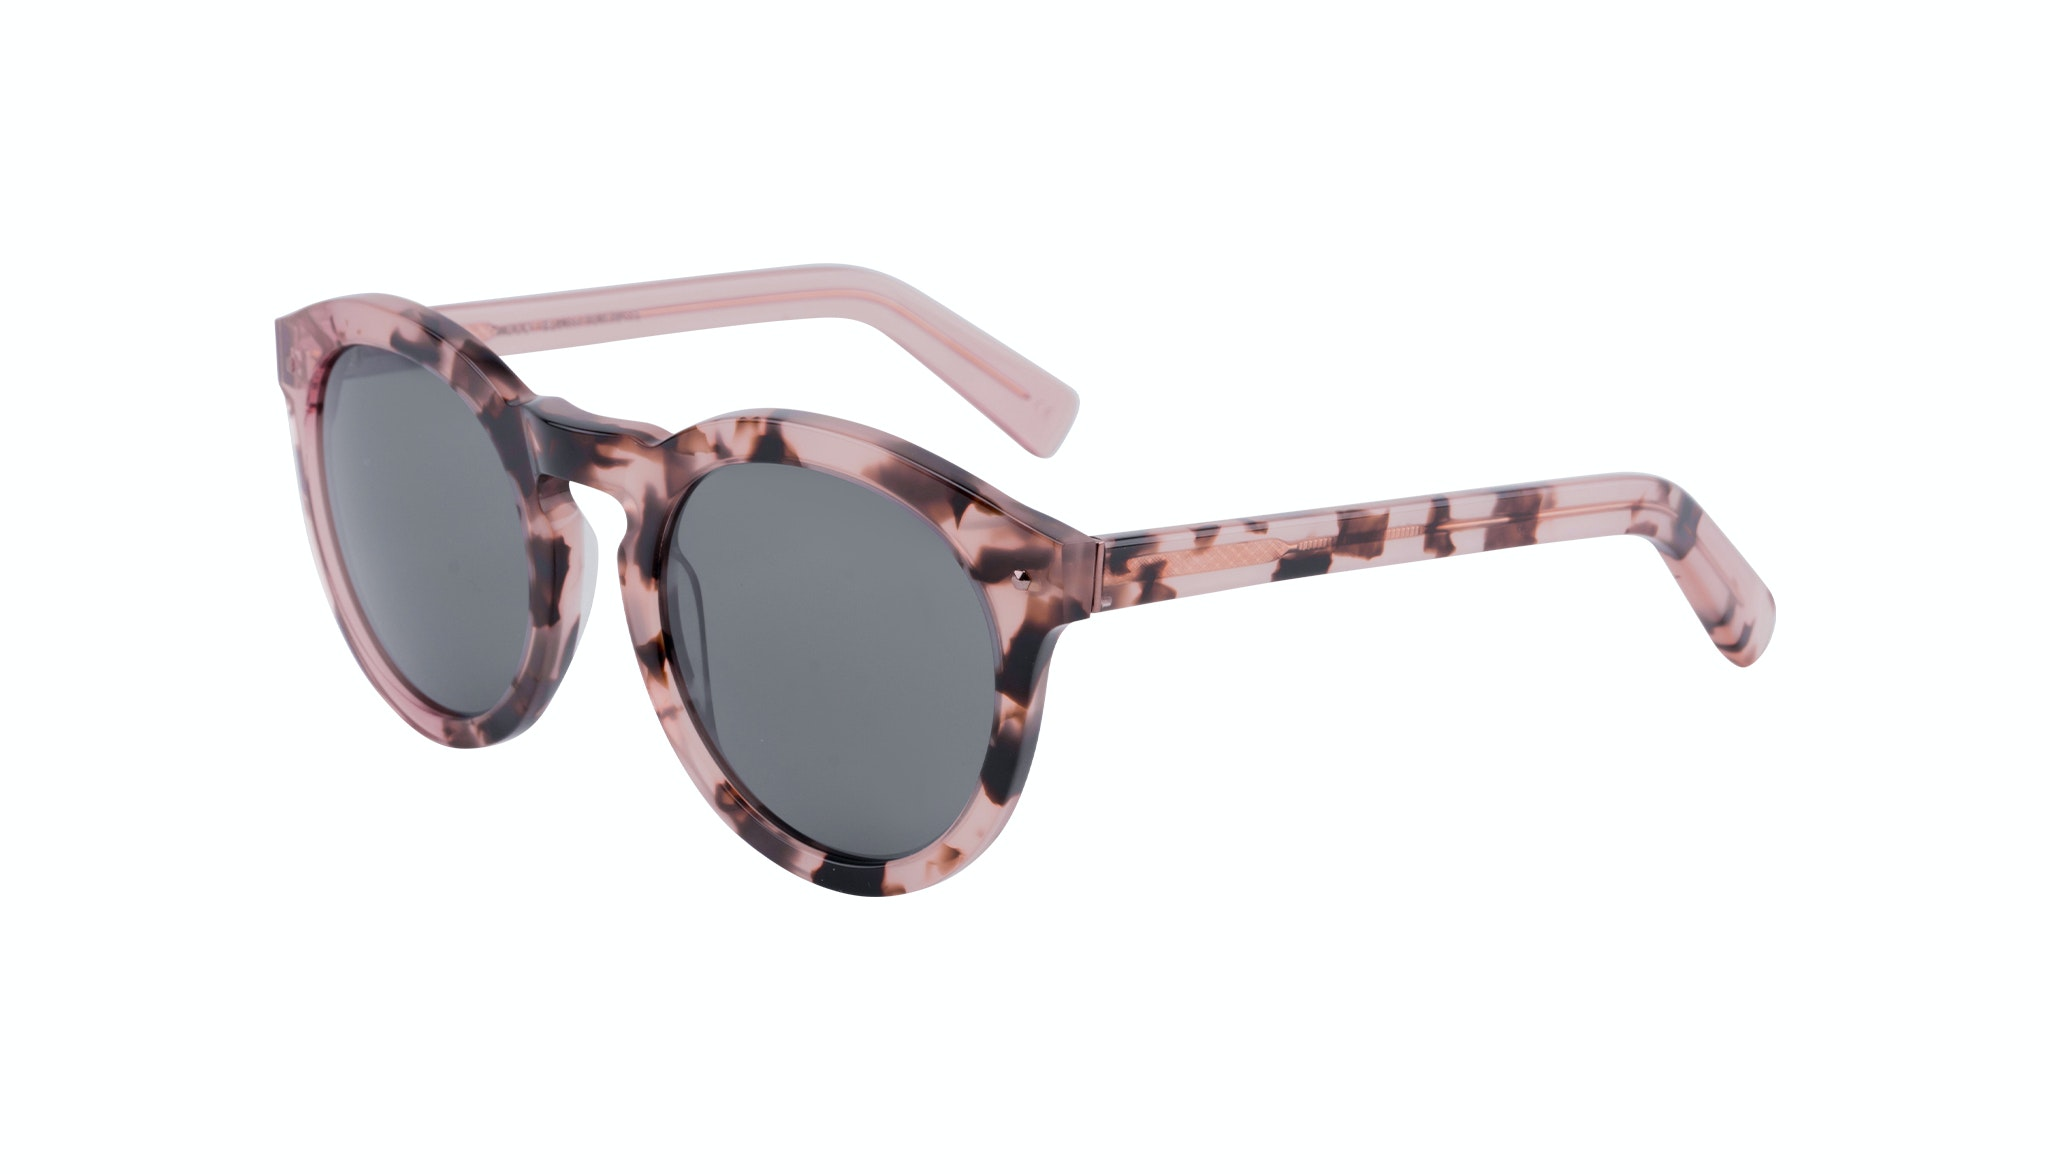 Affordable Fashion Glasses Round Sunglasses Women Mood Blush Tortoise Tilt